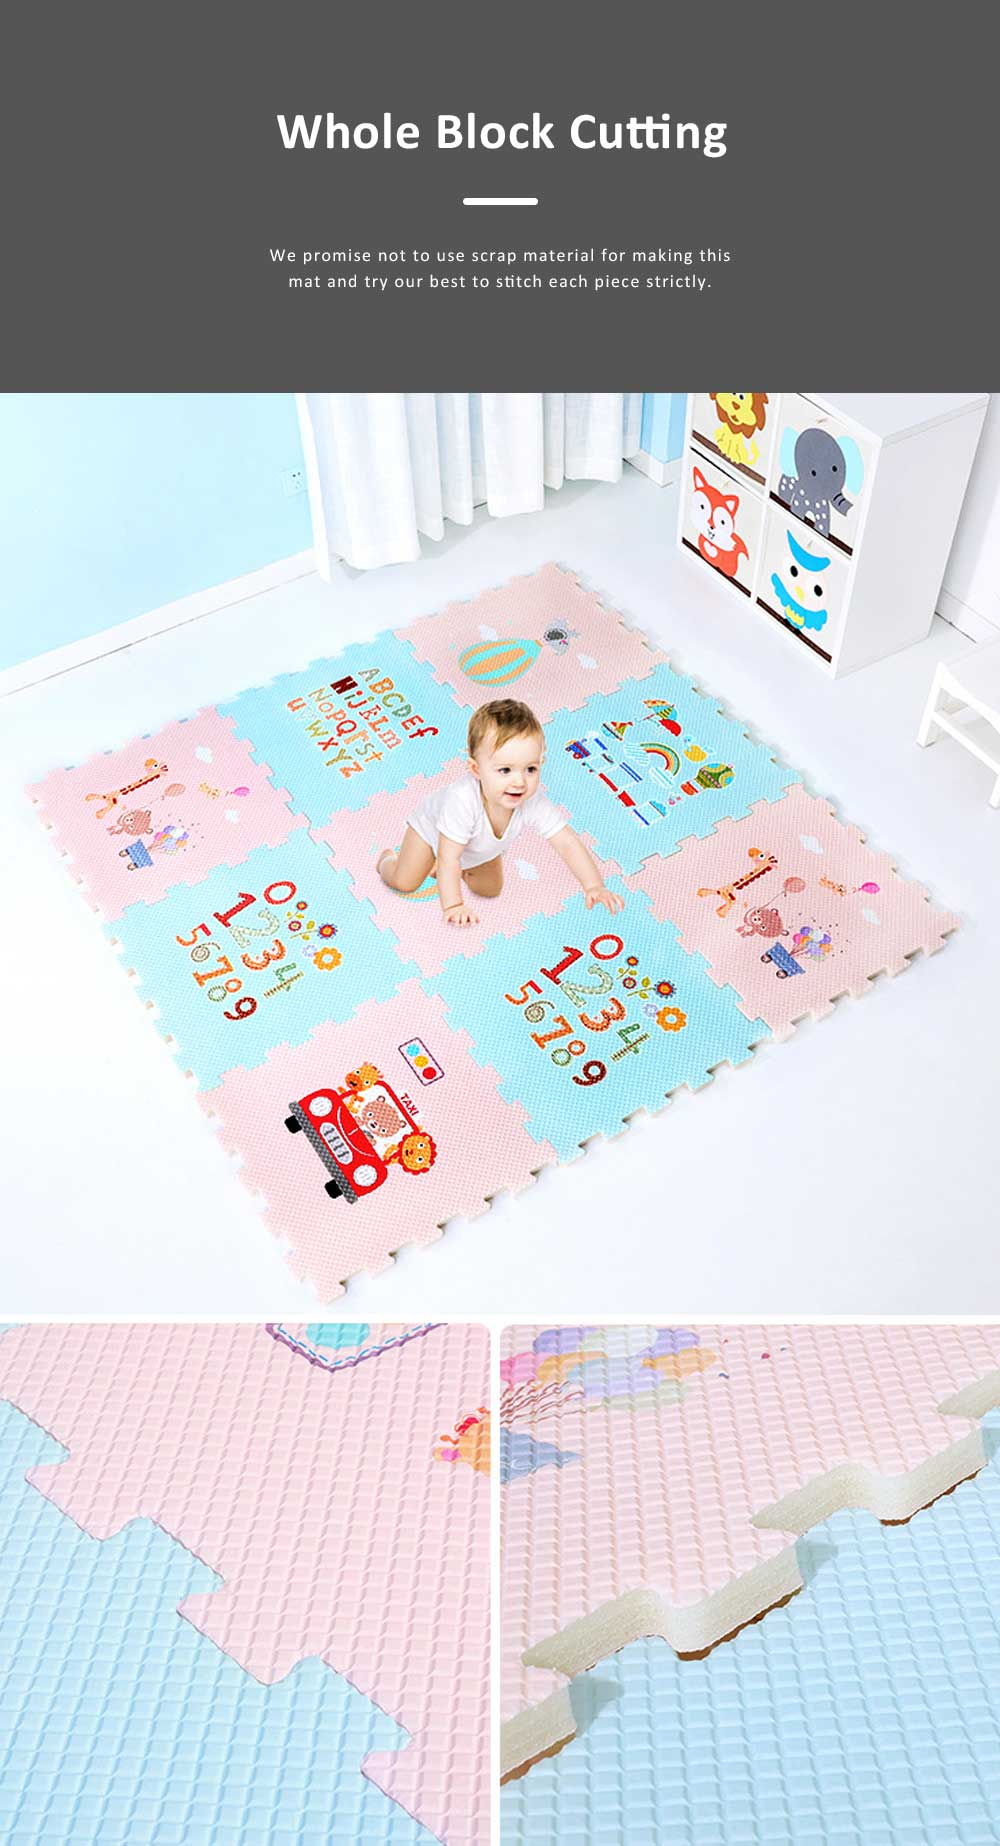 Nontoxic EVA Foam Material Baby Crawling Blanket, DIY Puzzle Suit for 3 months to 3 Year Baby, Floor Game Mat Kids Crawling Living Room Blanket 7